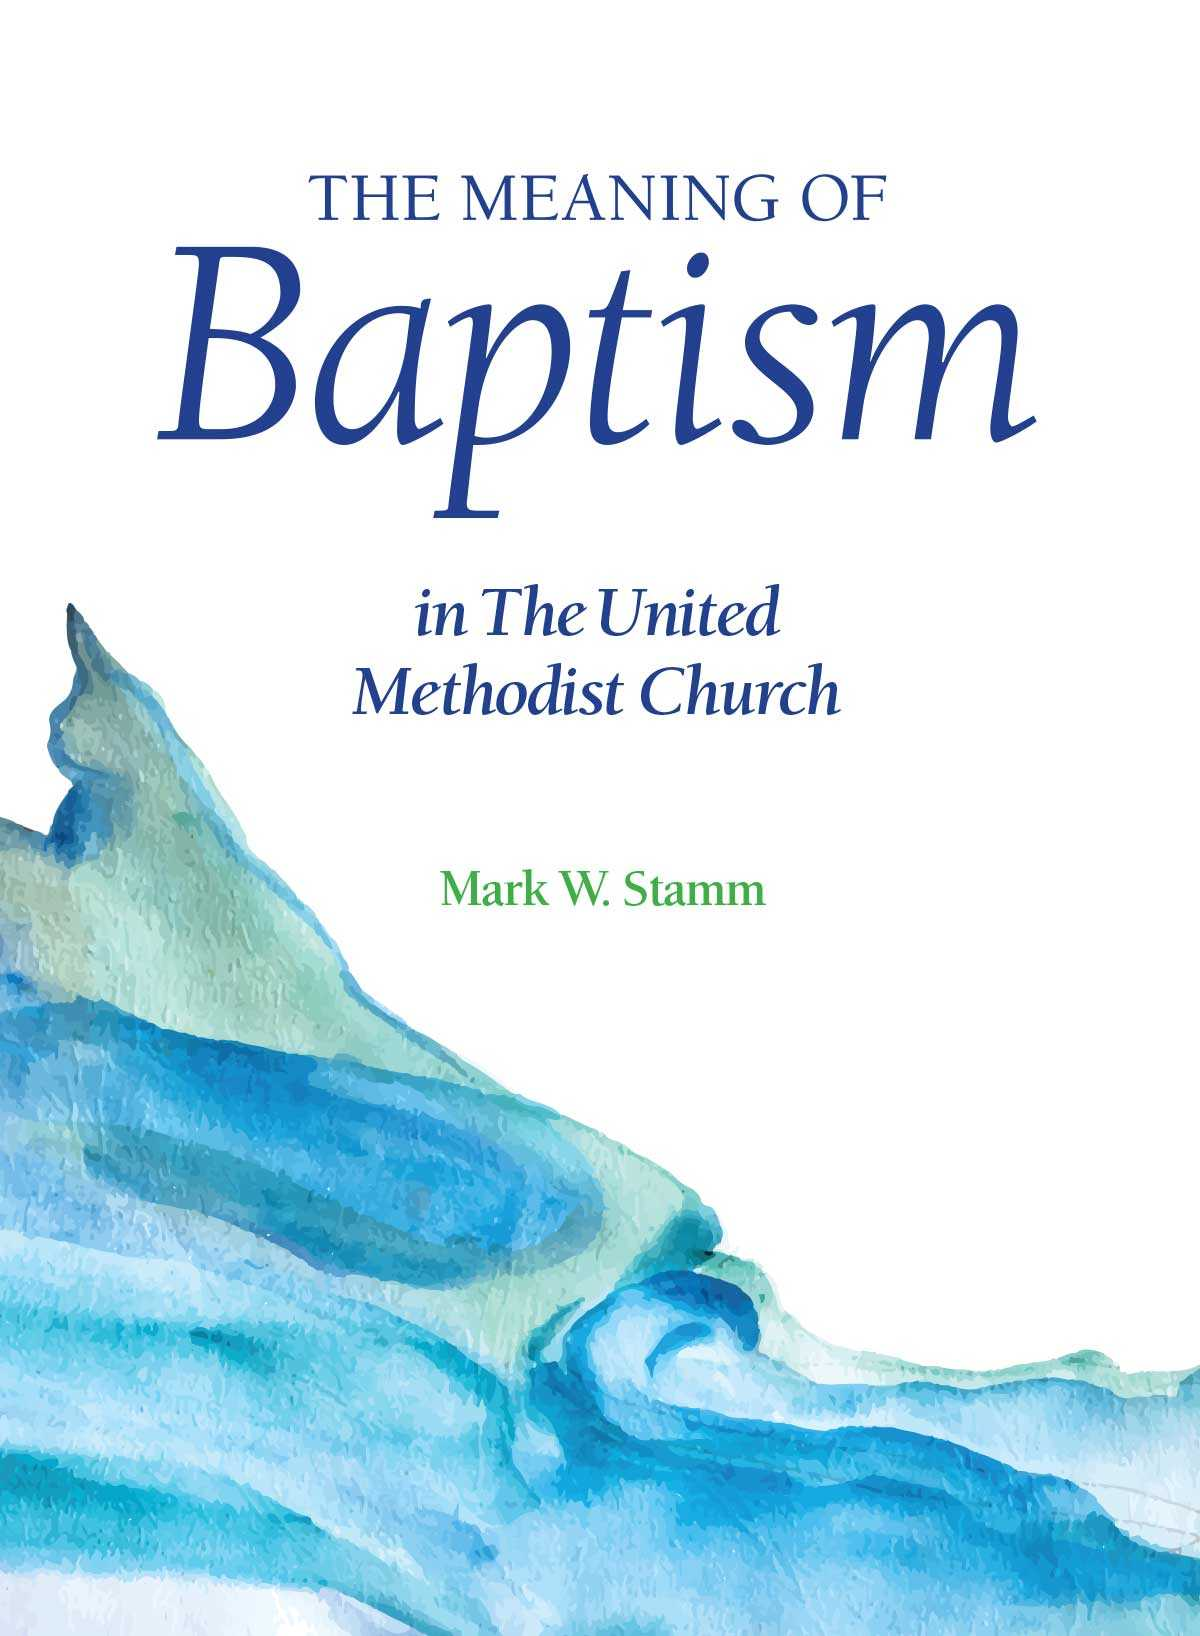 Stamm meaning of baptism cover